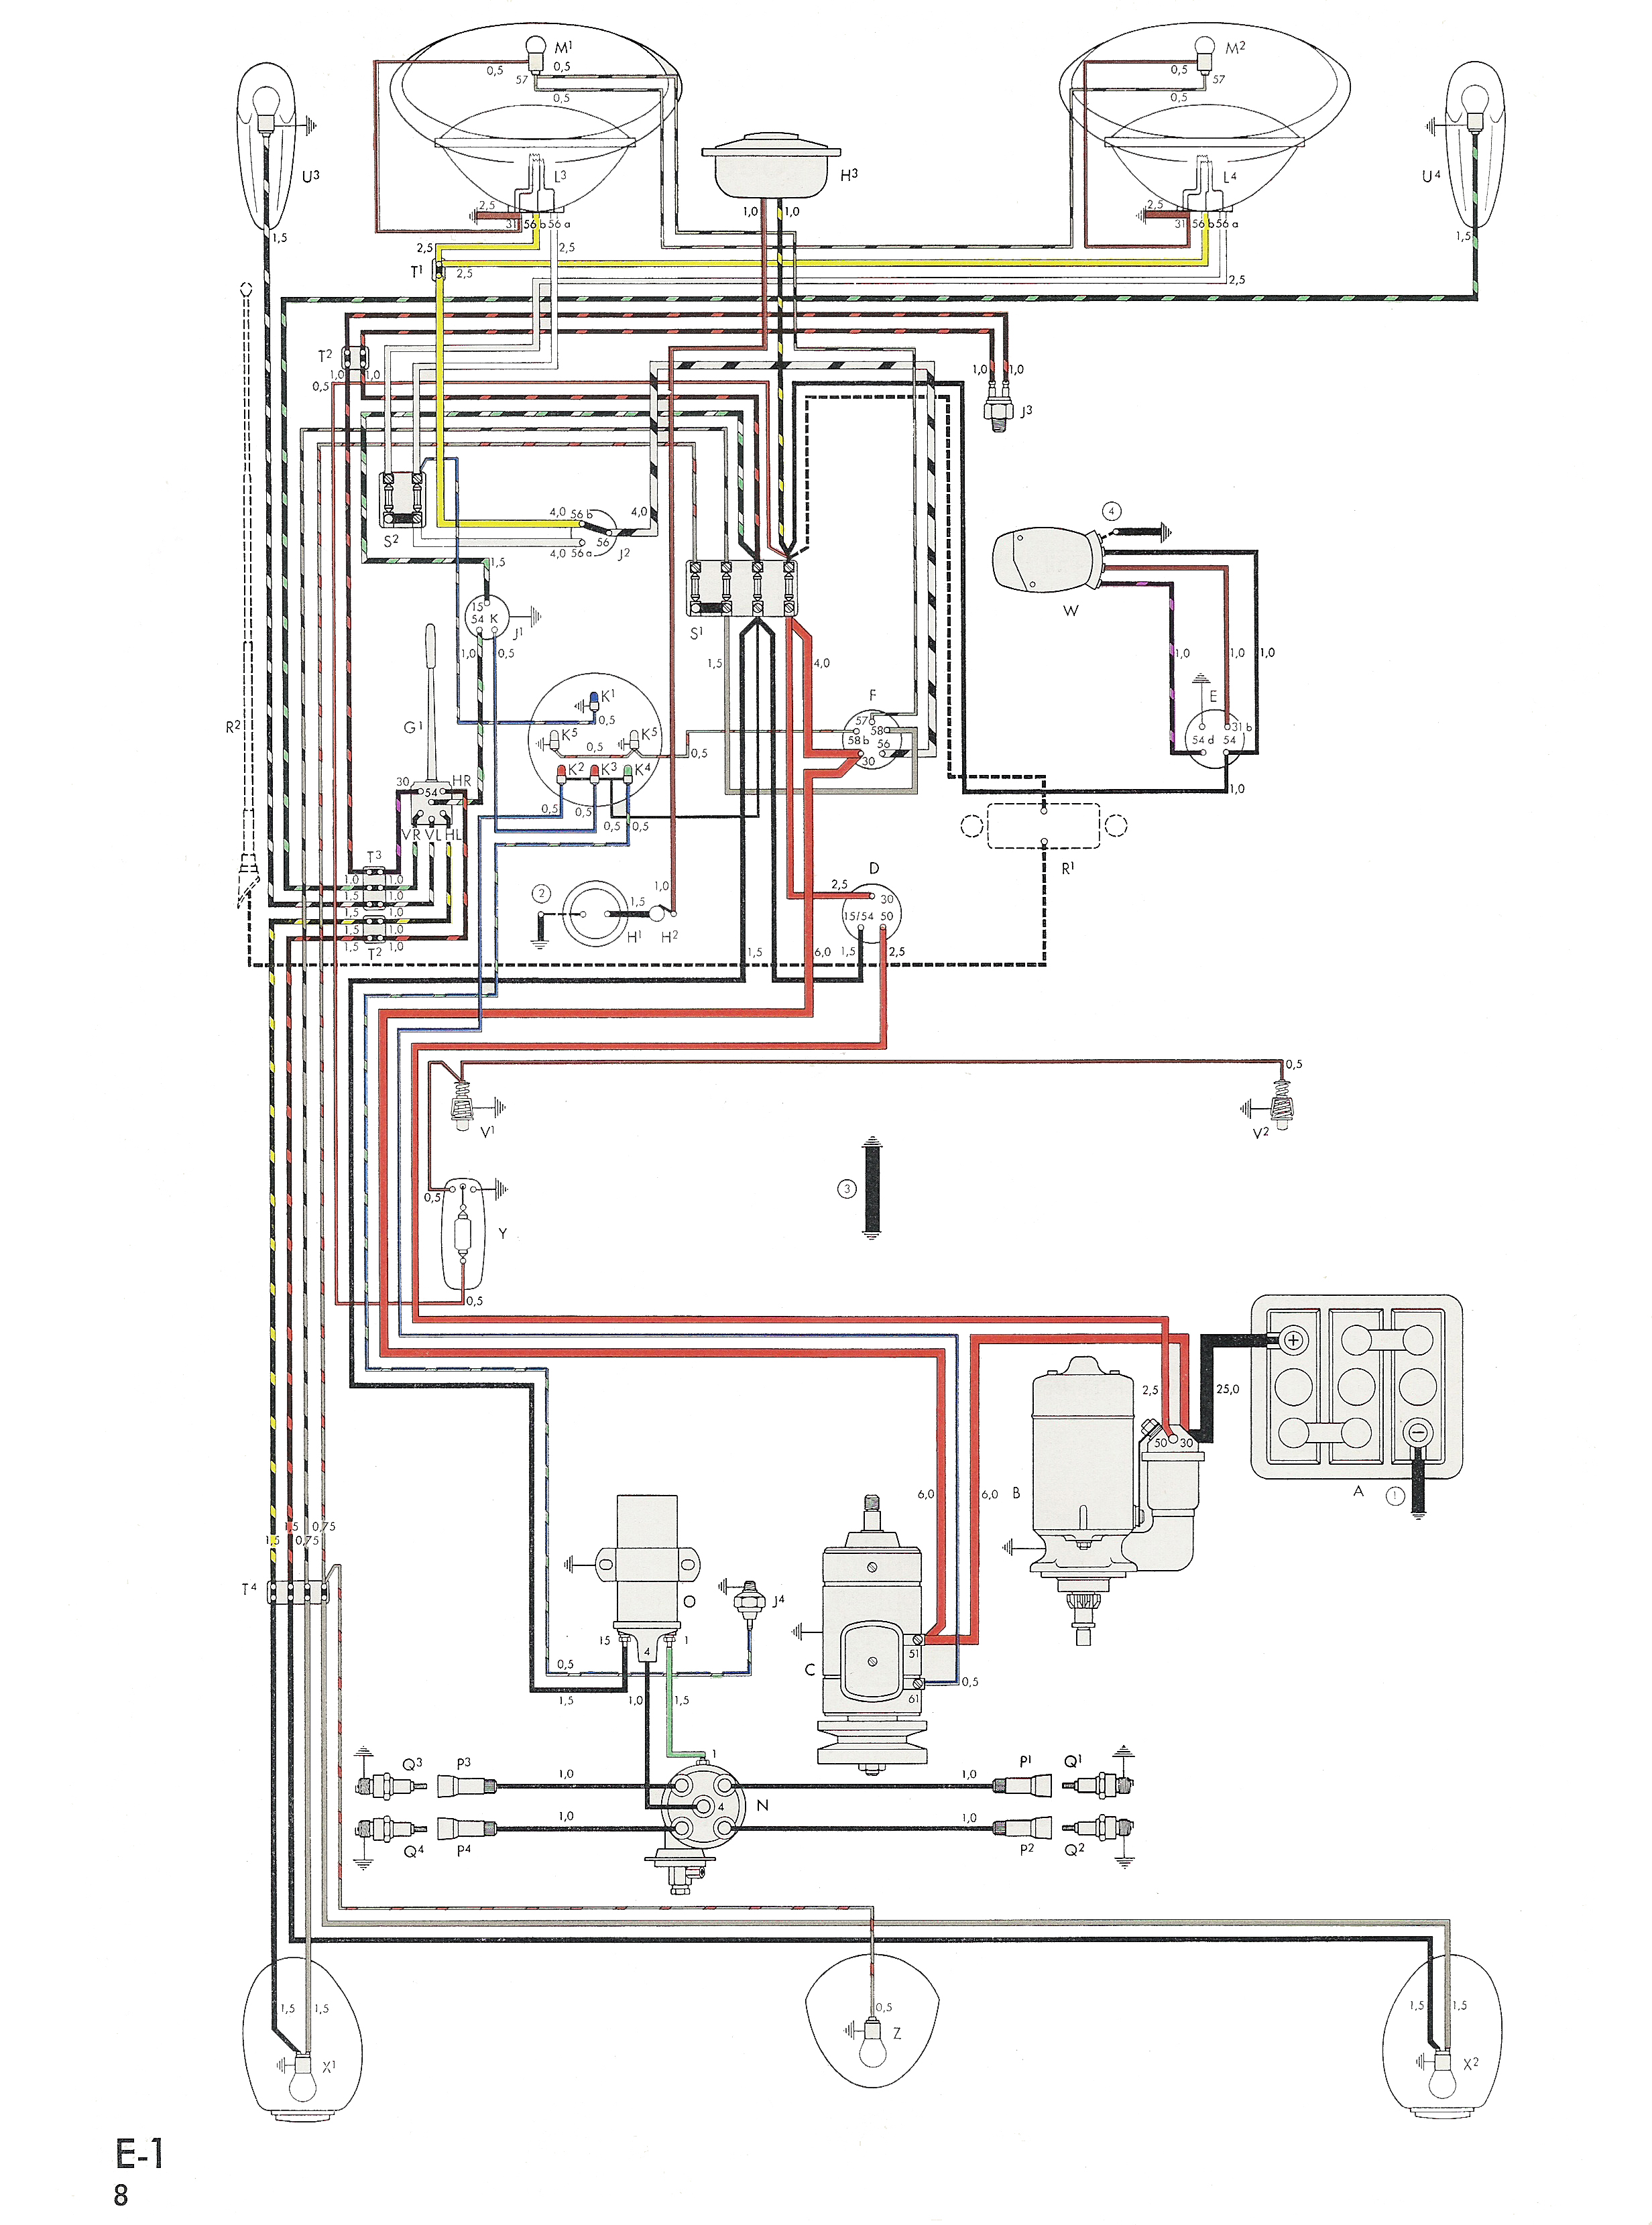 5 light wiring diagram